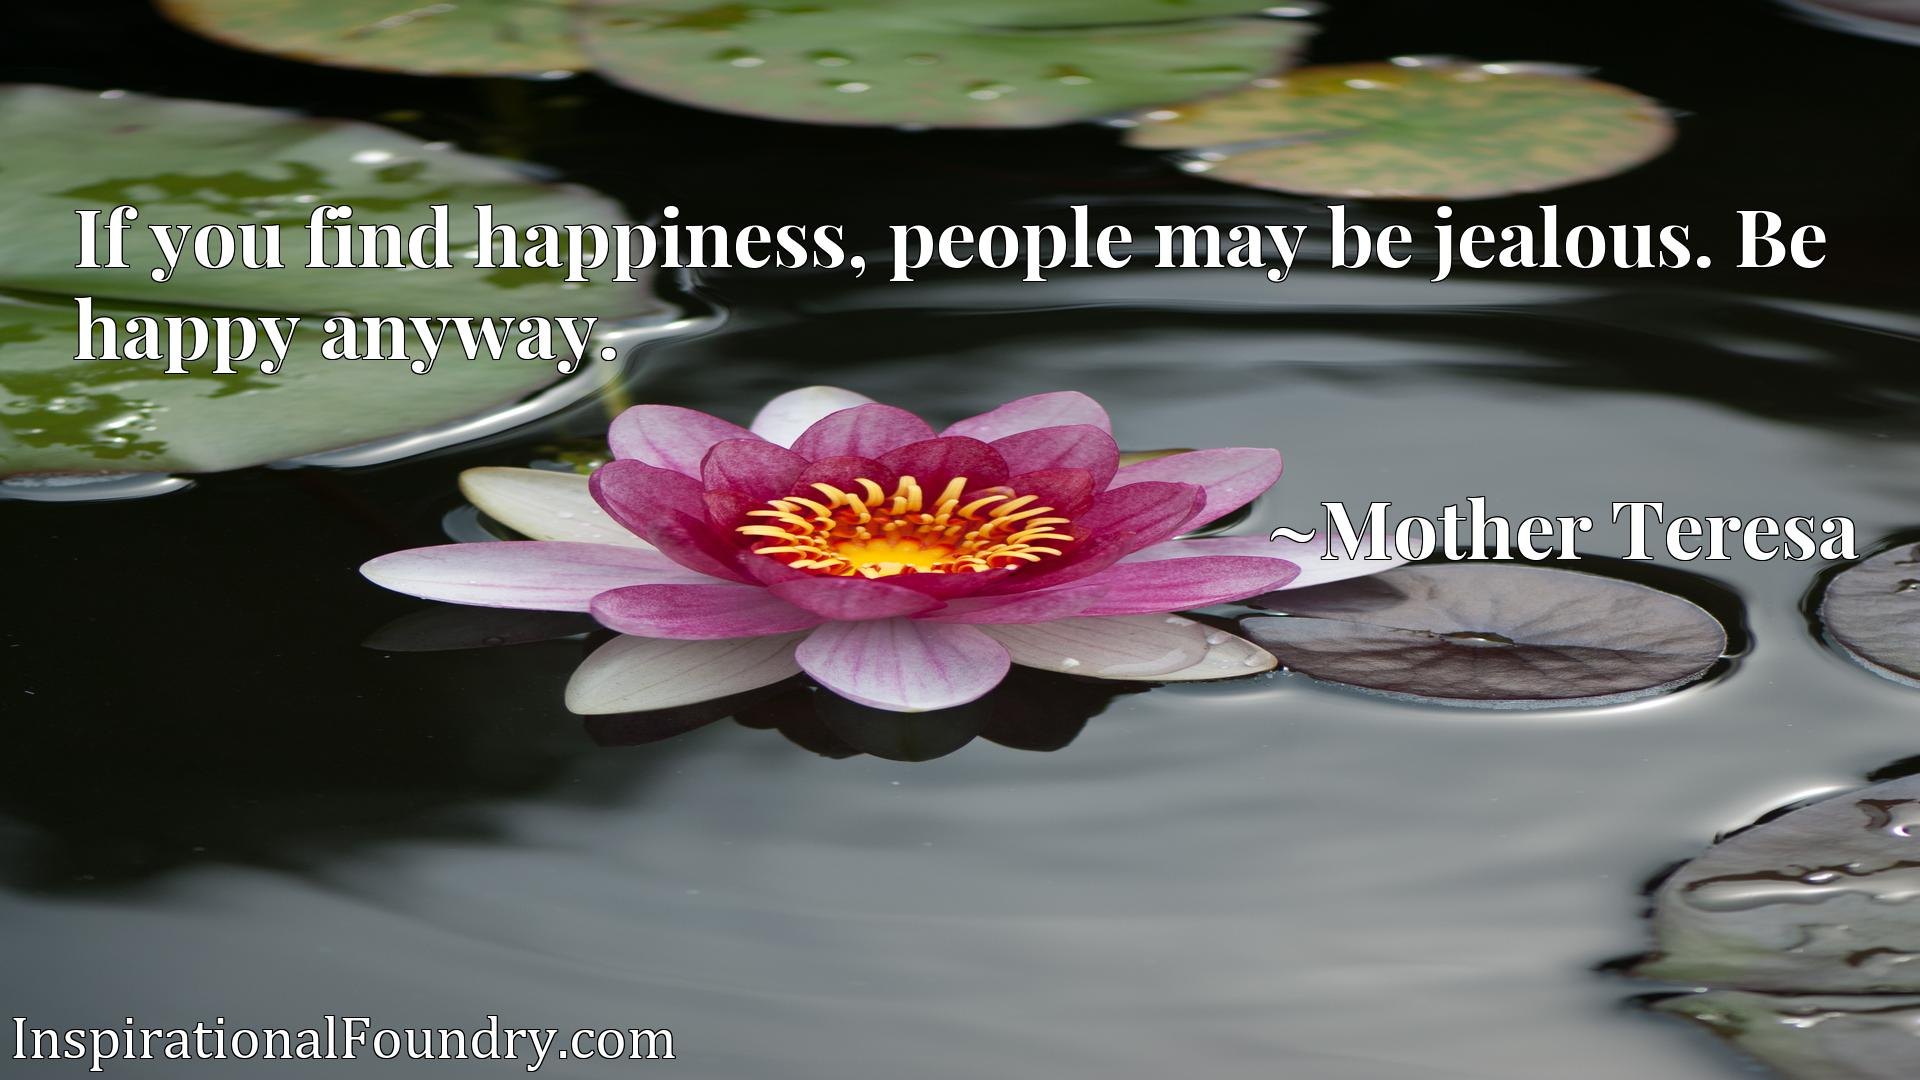 Quote Picture :If you find happiness, people may be jealous. Be happy anyway.